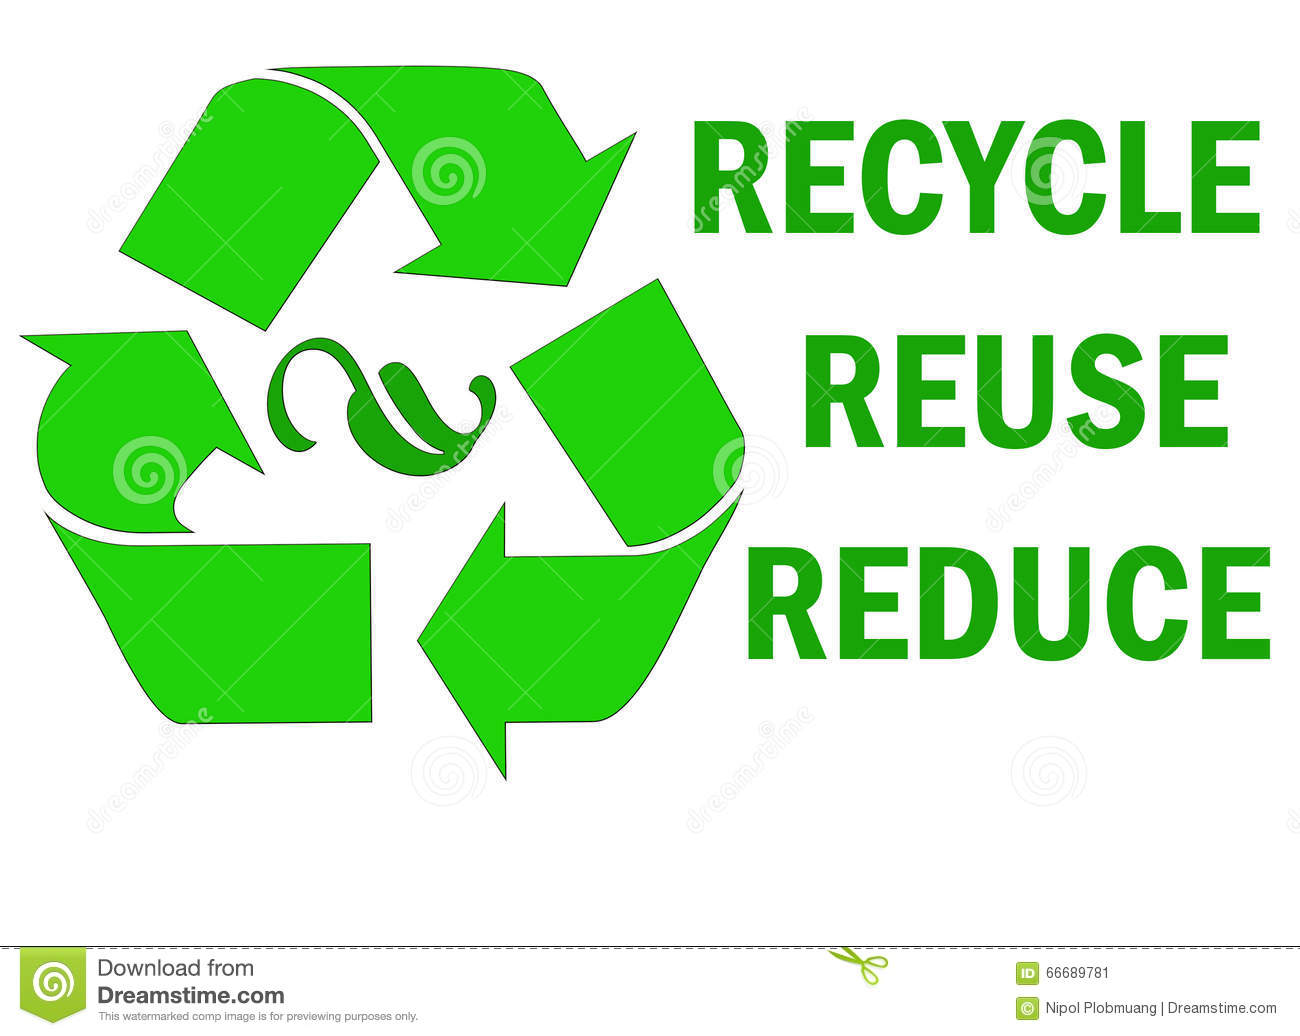 recycling reducing reusing Singapore's integrated solid waste management system focuses on two key thrusts - waste minimisation and recycling, or simply the 3rs (reduce, reuse, recycle.